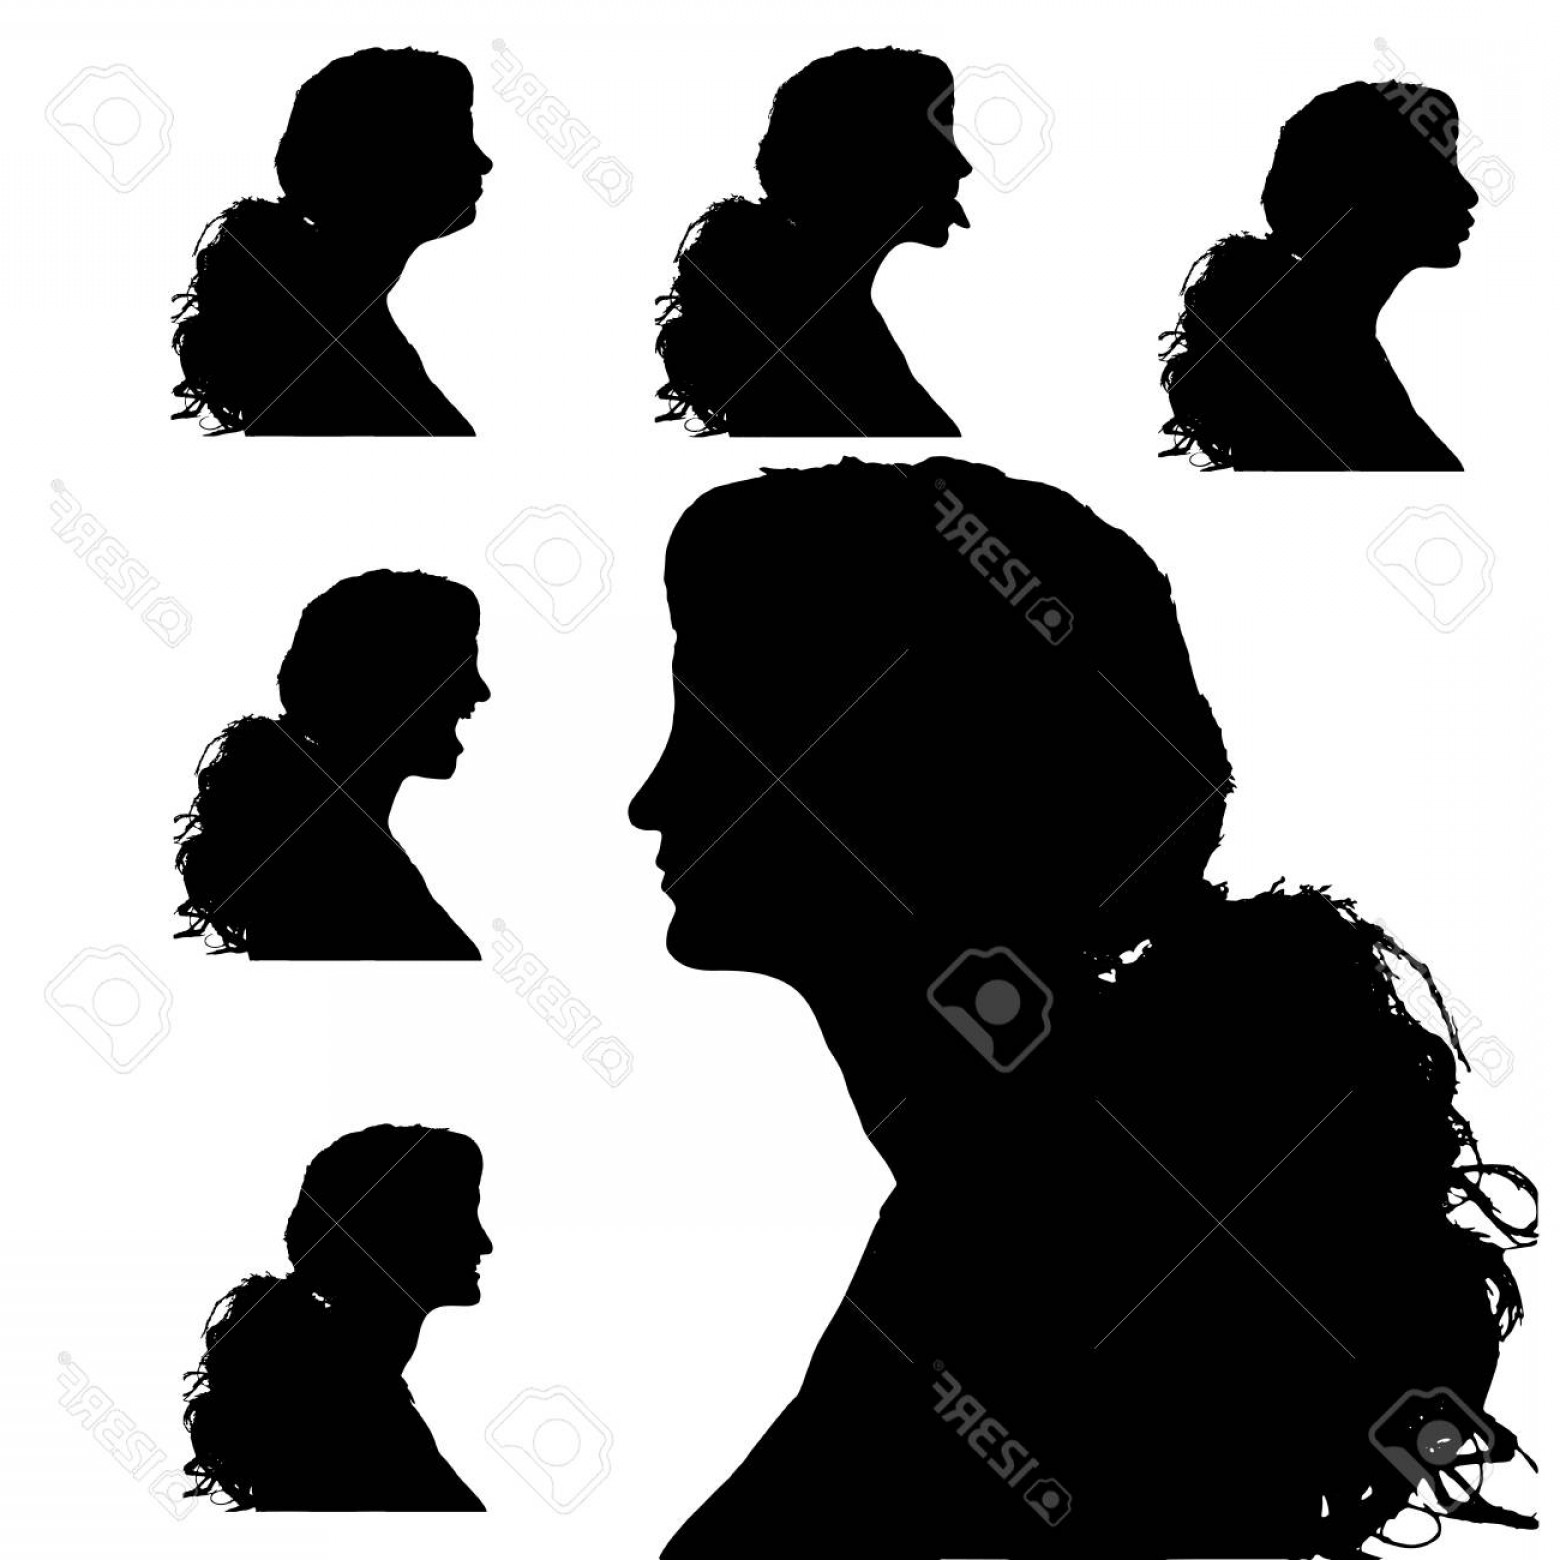 Soldier Woman Profile Vector: Photostock Vector Vector Silhouettes Woman In Profile On White Background